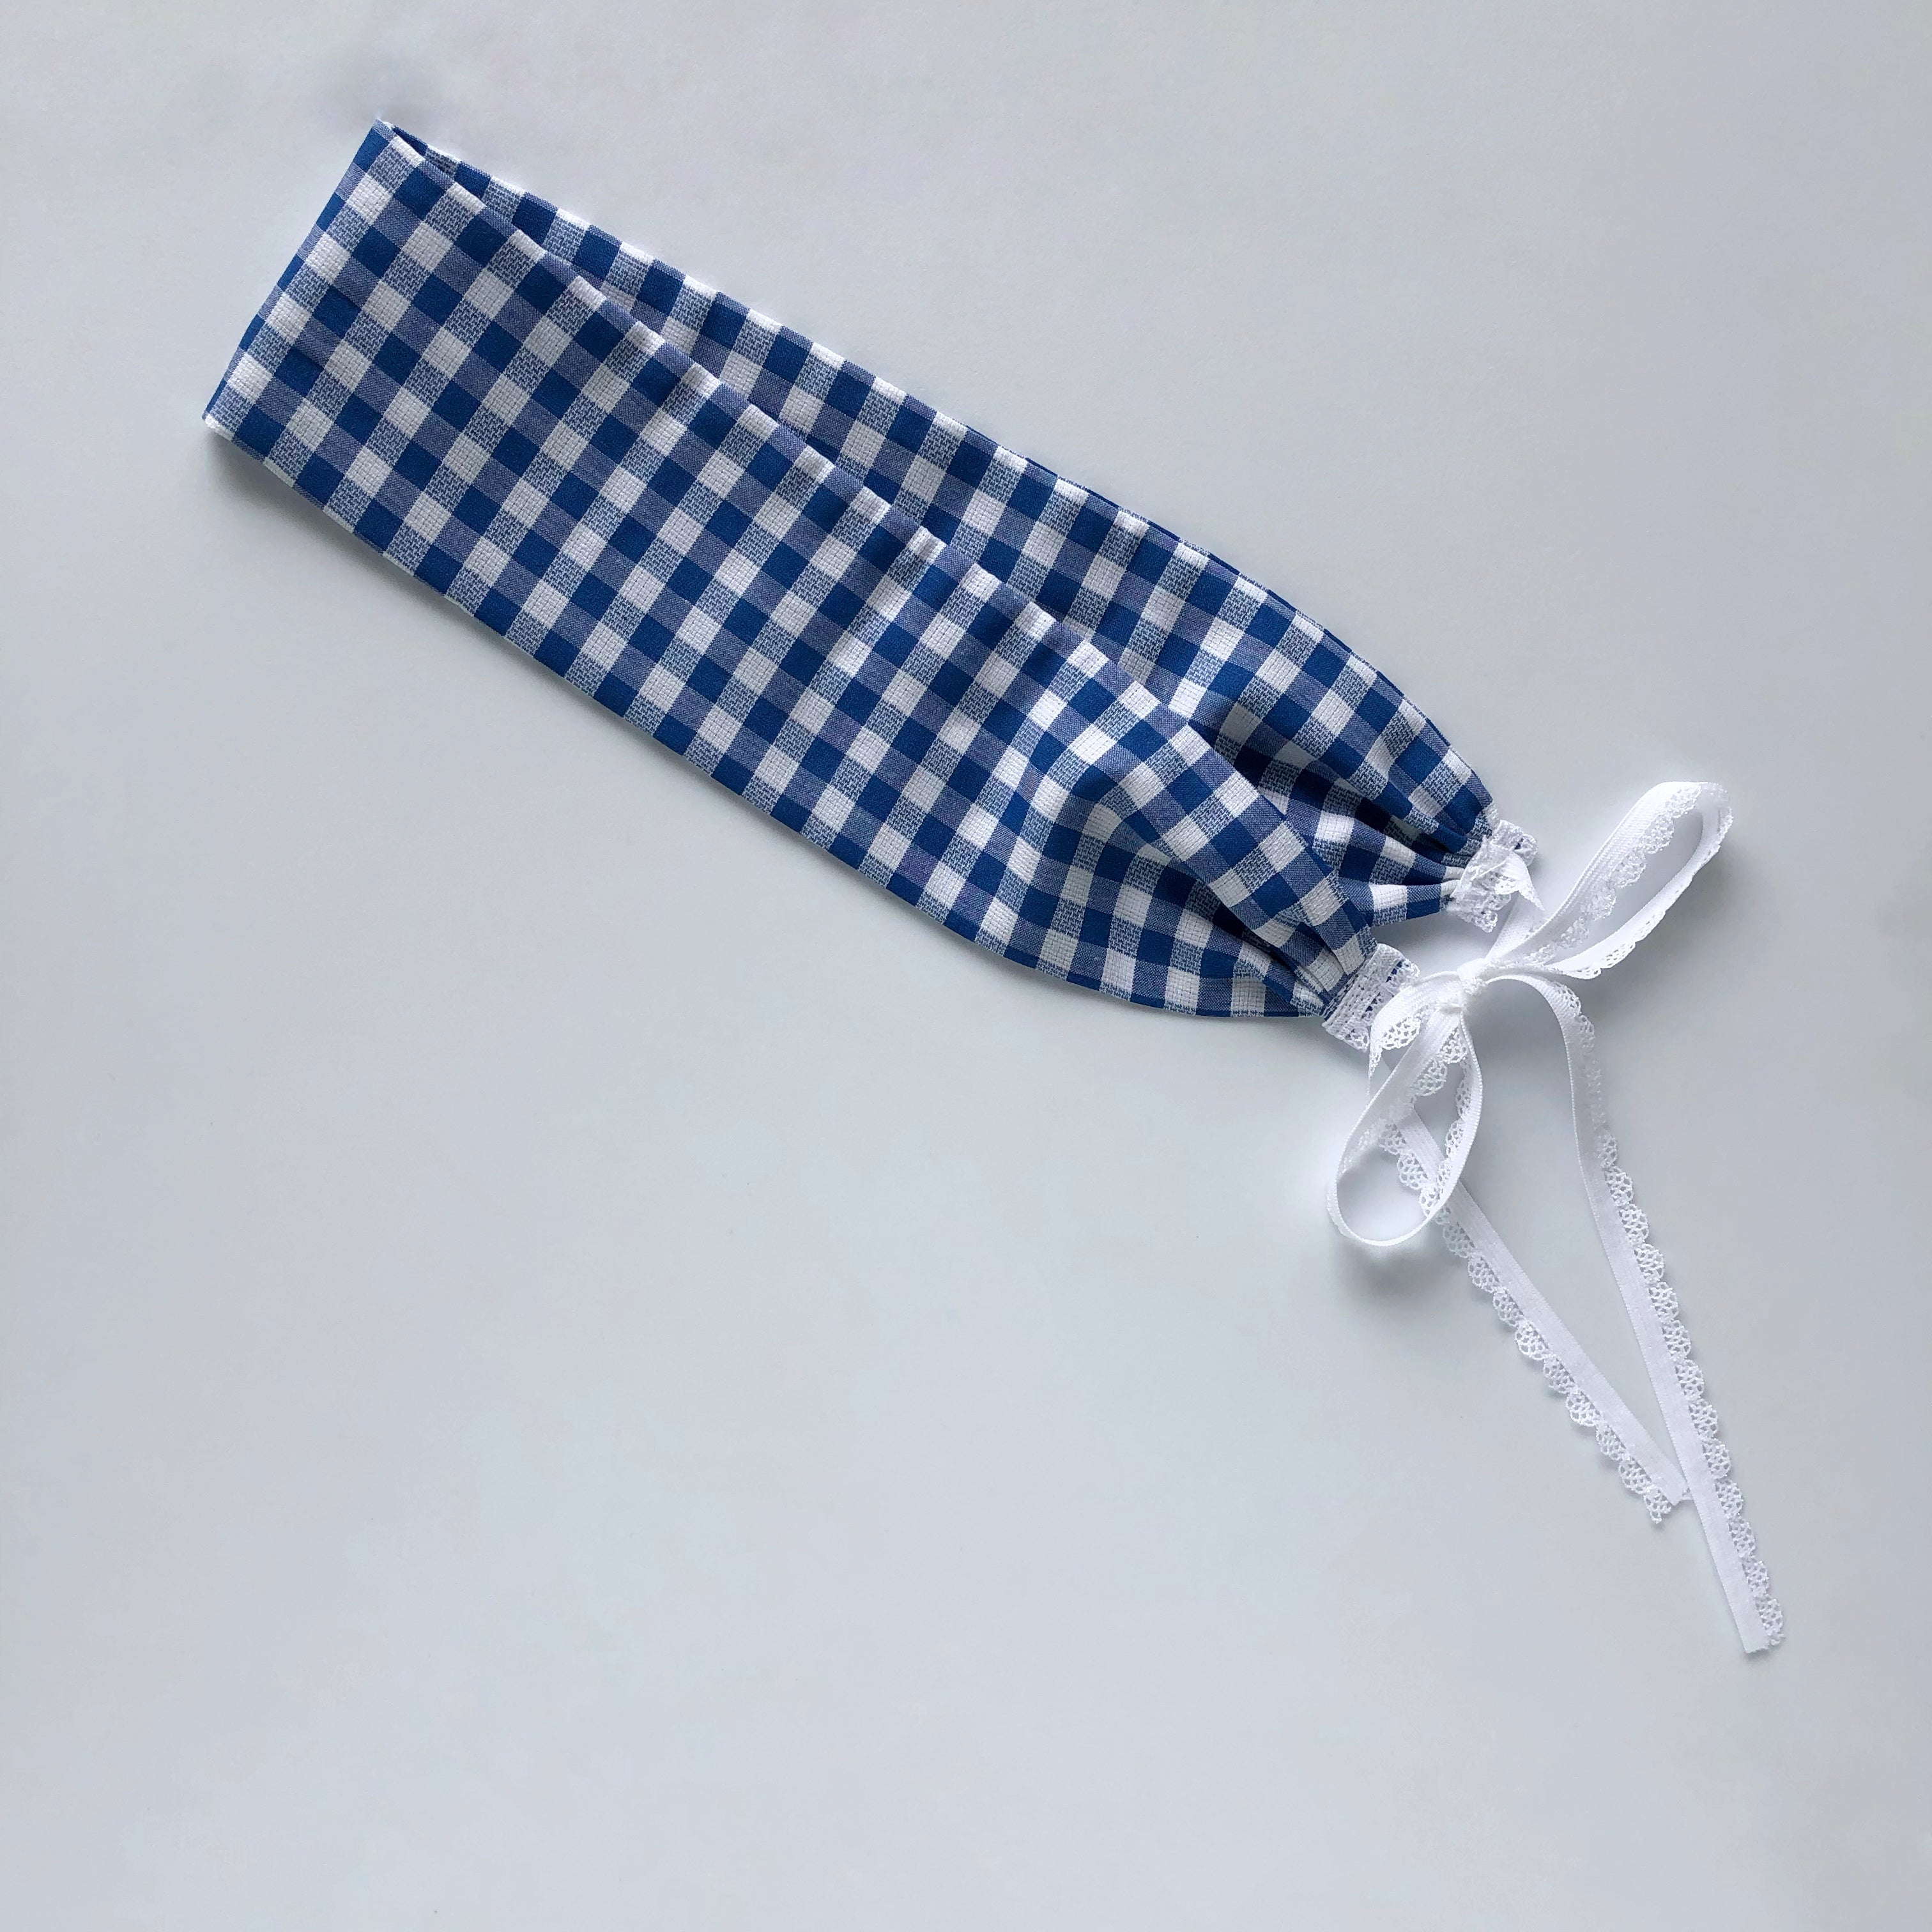 Blue gingham headband with white elastic ties